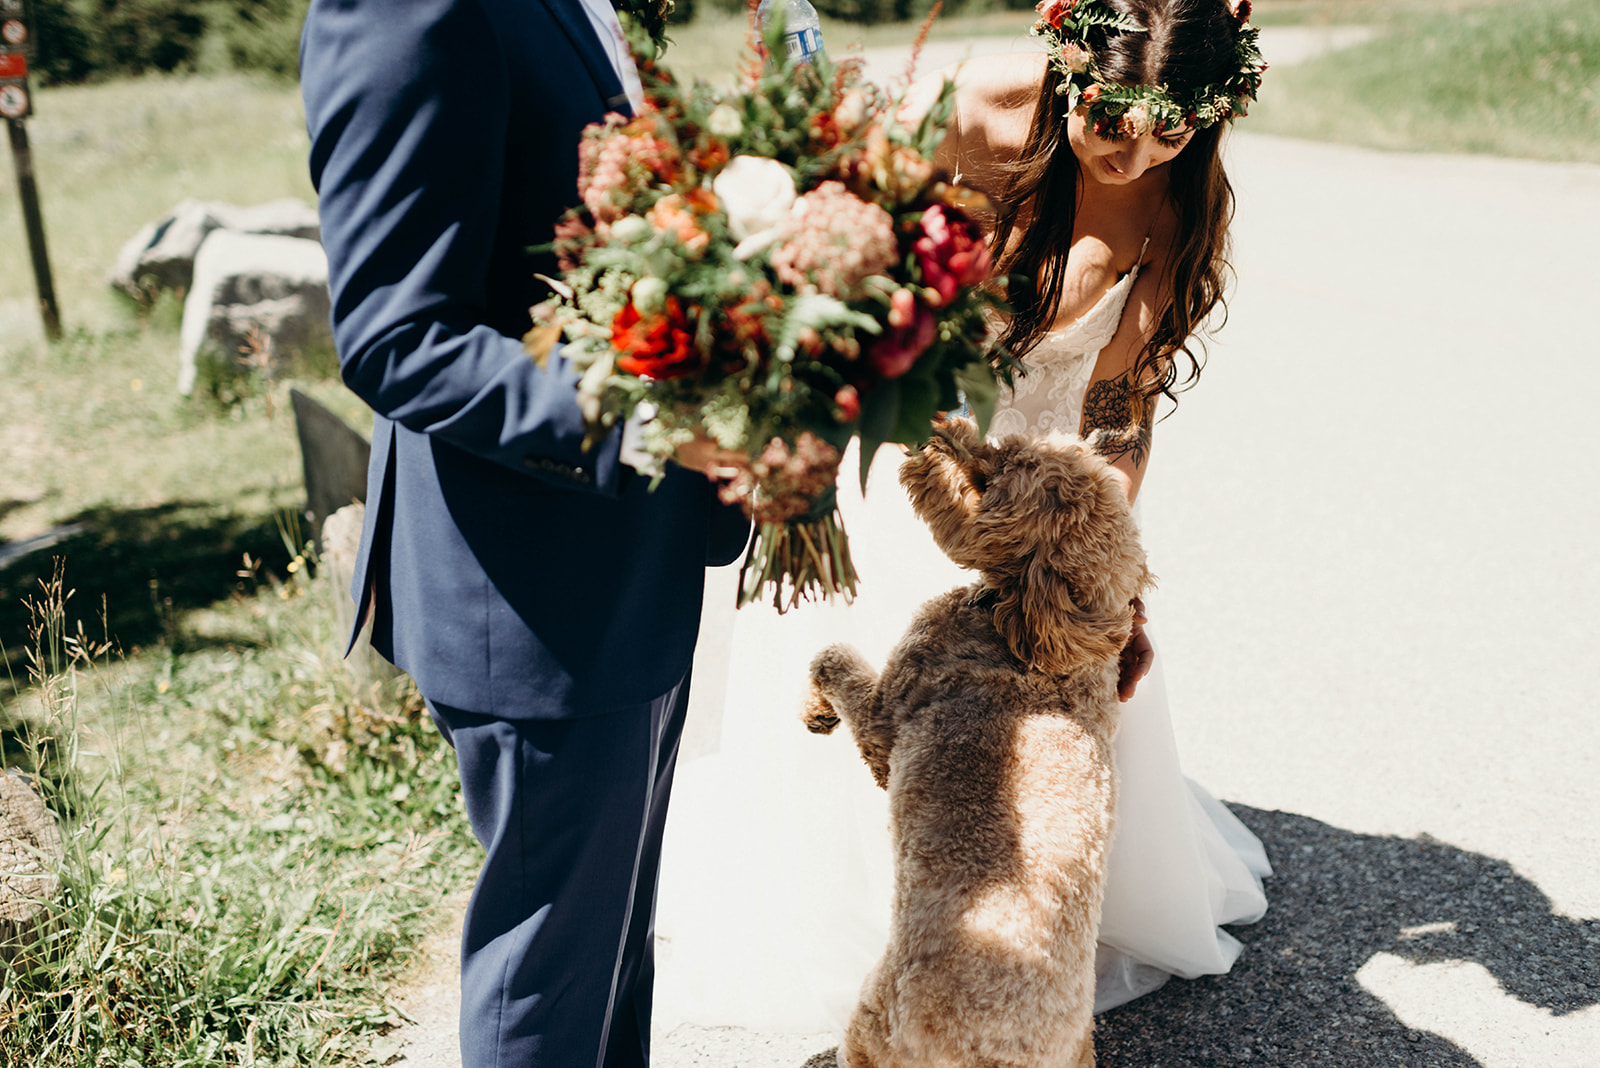 how-to-plan-your-wedding-day-timeline-3.jpg